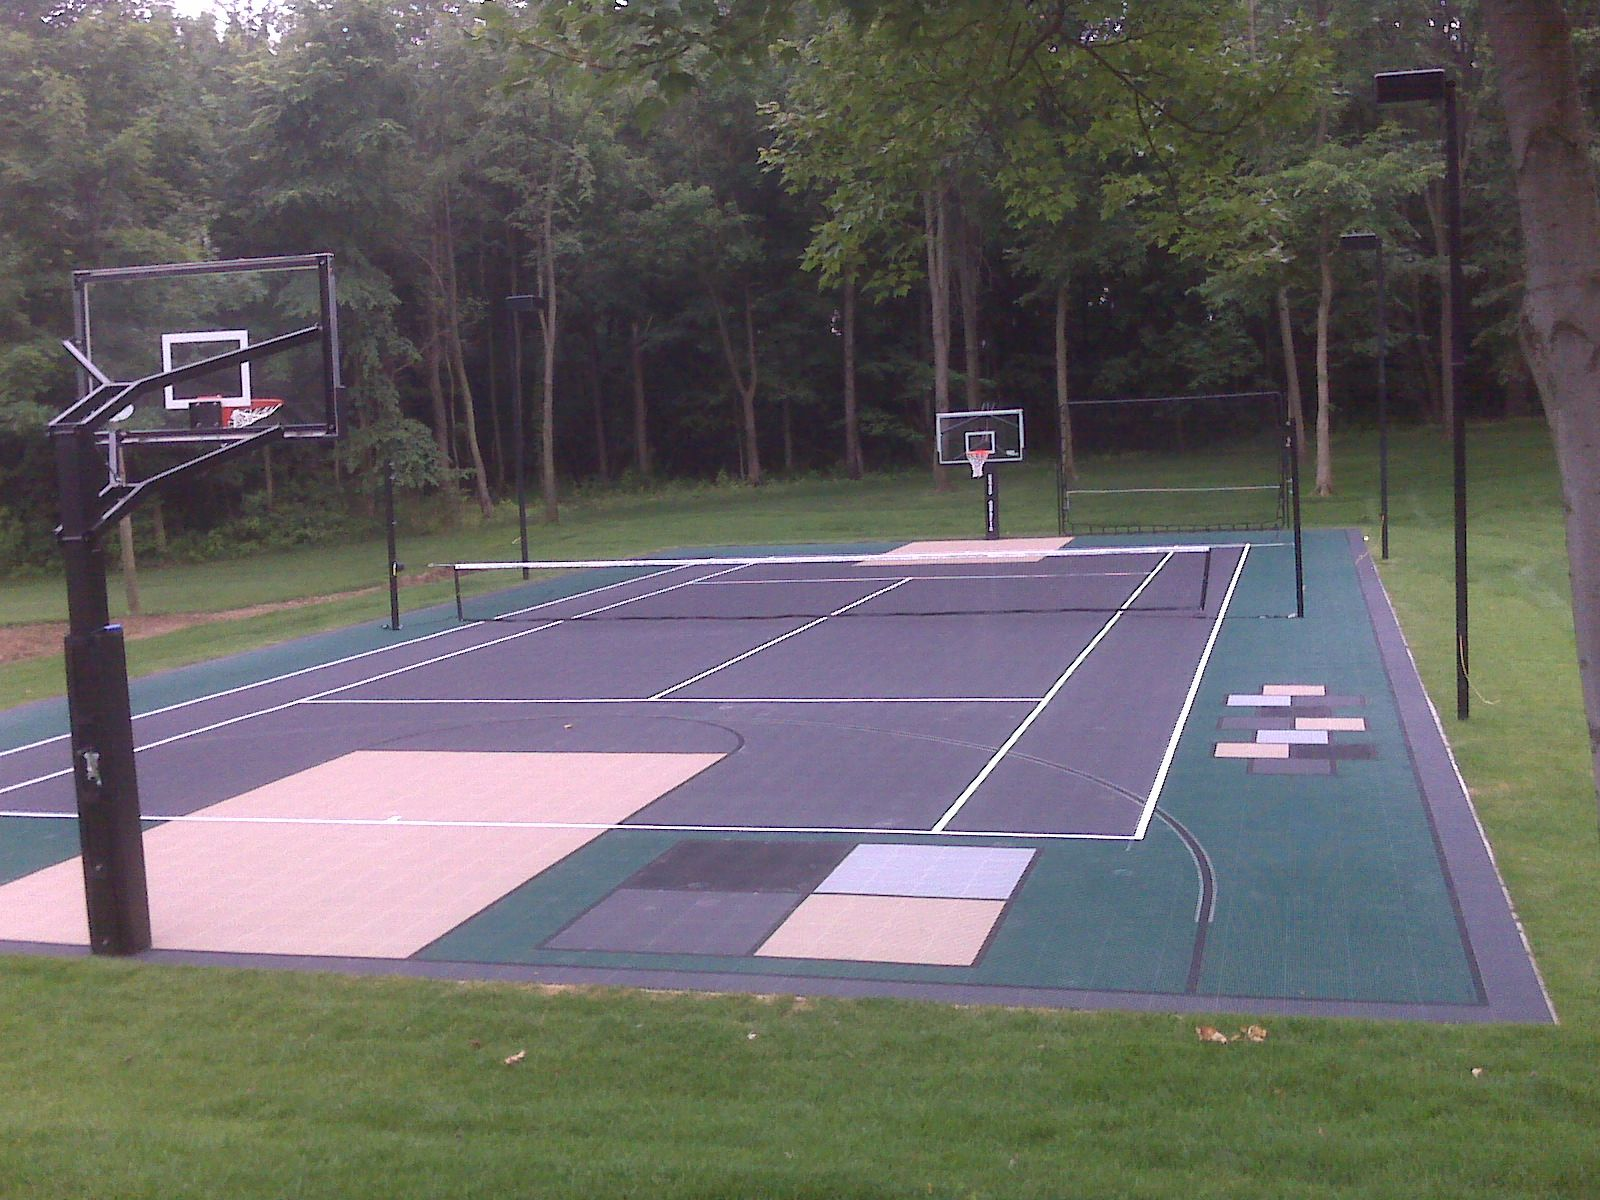 50x100 Multi Court This Court Design Offers 4 Square Hopscotch Shuffle Board Basketball Tennis Volleyball Badmi Backyard Court At Home Gym Sport Court